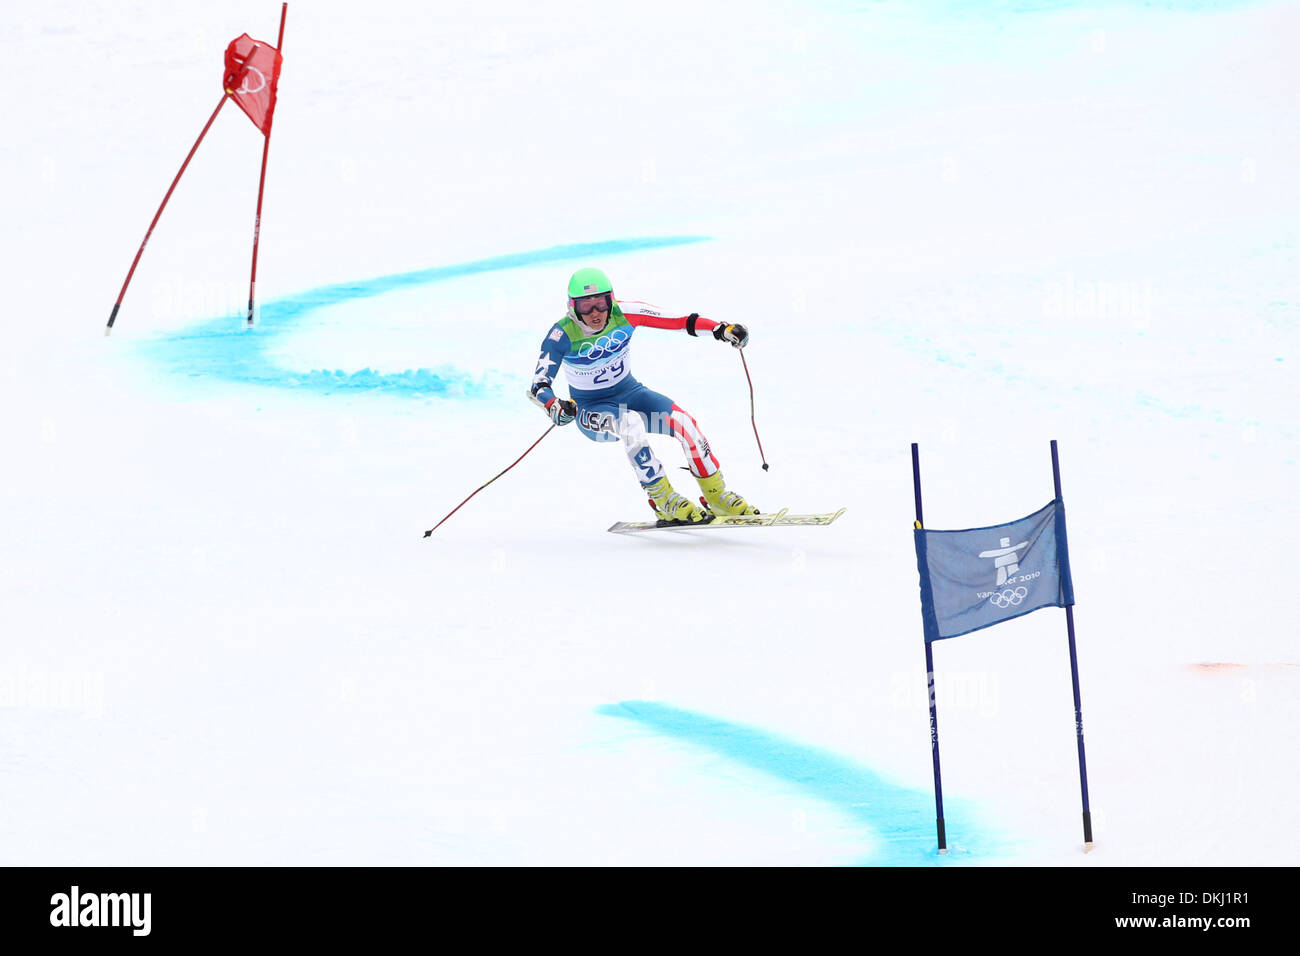 Feb. 24, 2010 - Whistler, British Columbia, Canada - TOMMY FORD (USA) competes in Men's Giant Slalom at the Vancouver Stock Photo